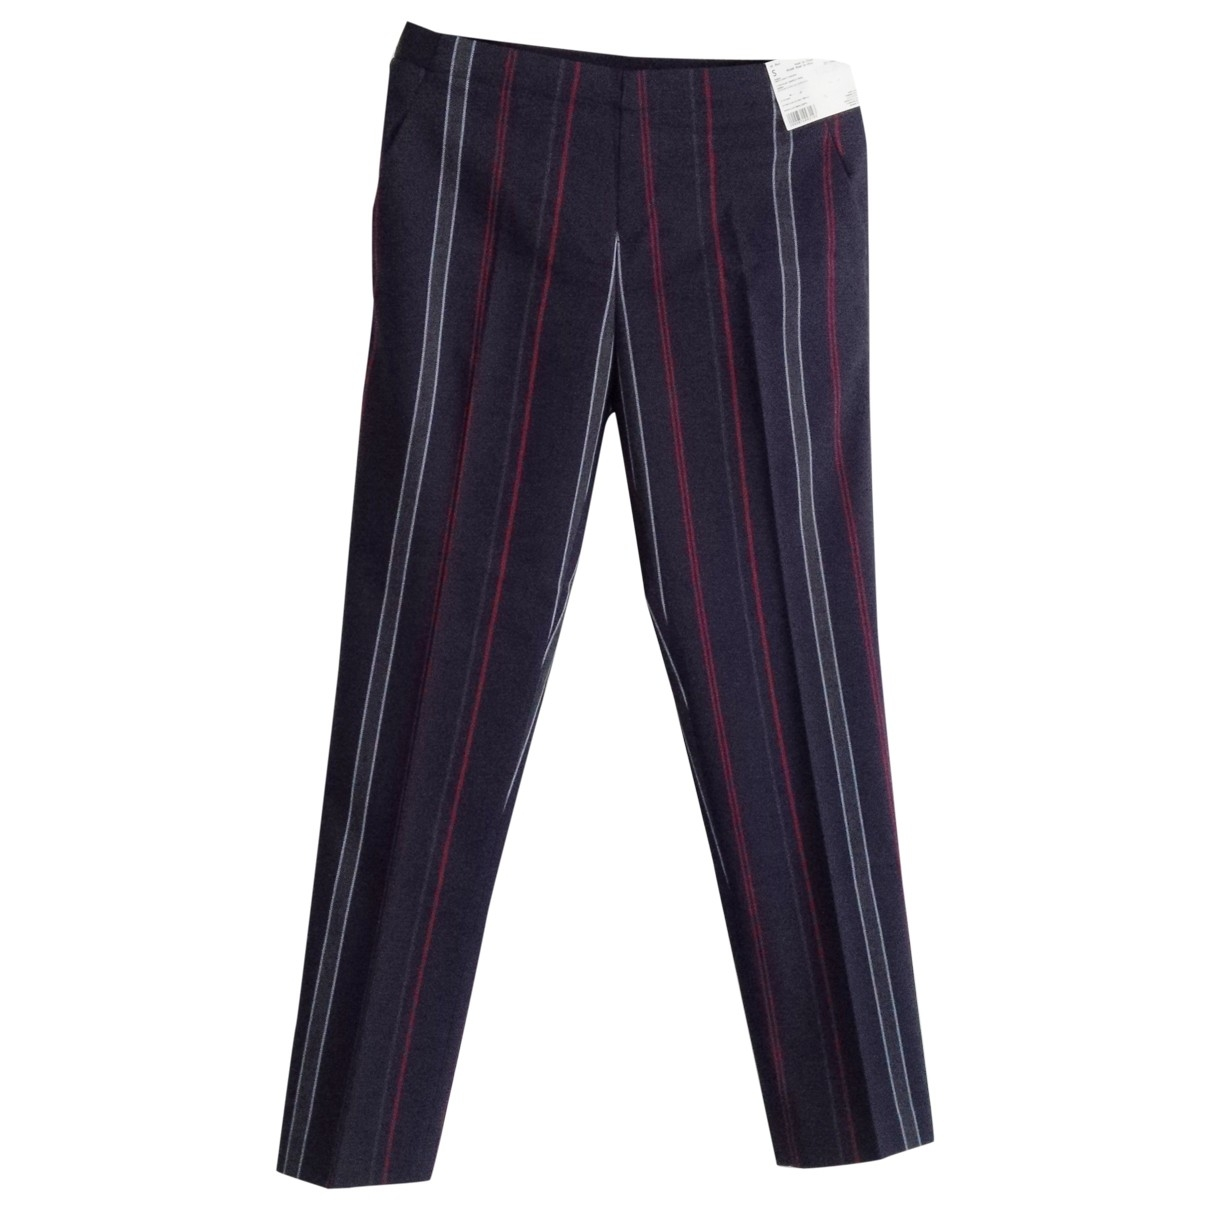 Uniqlo \N Navy Trousers for Women S International